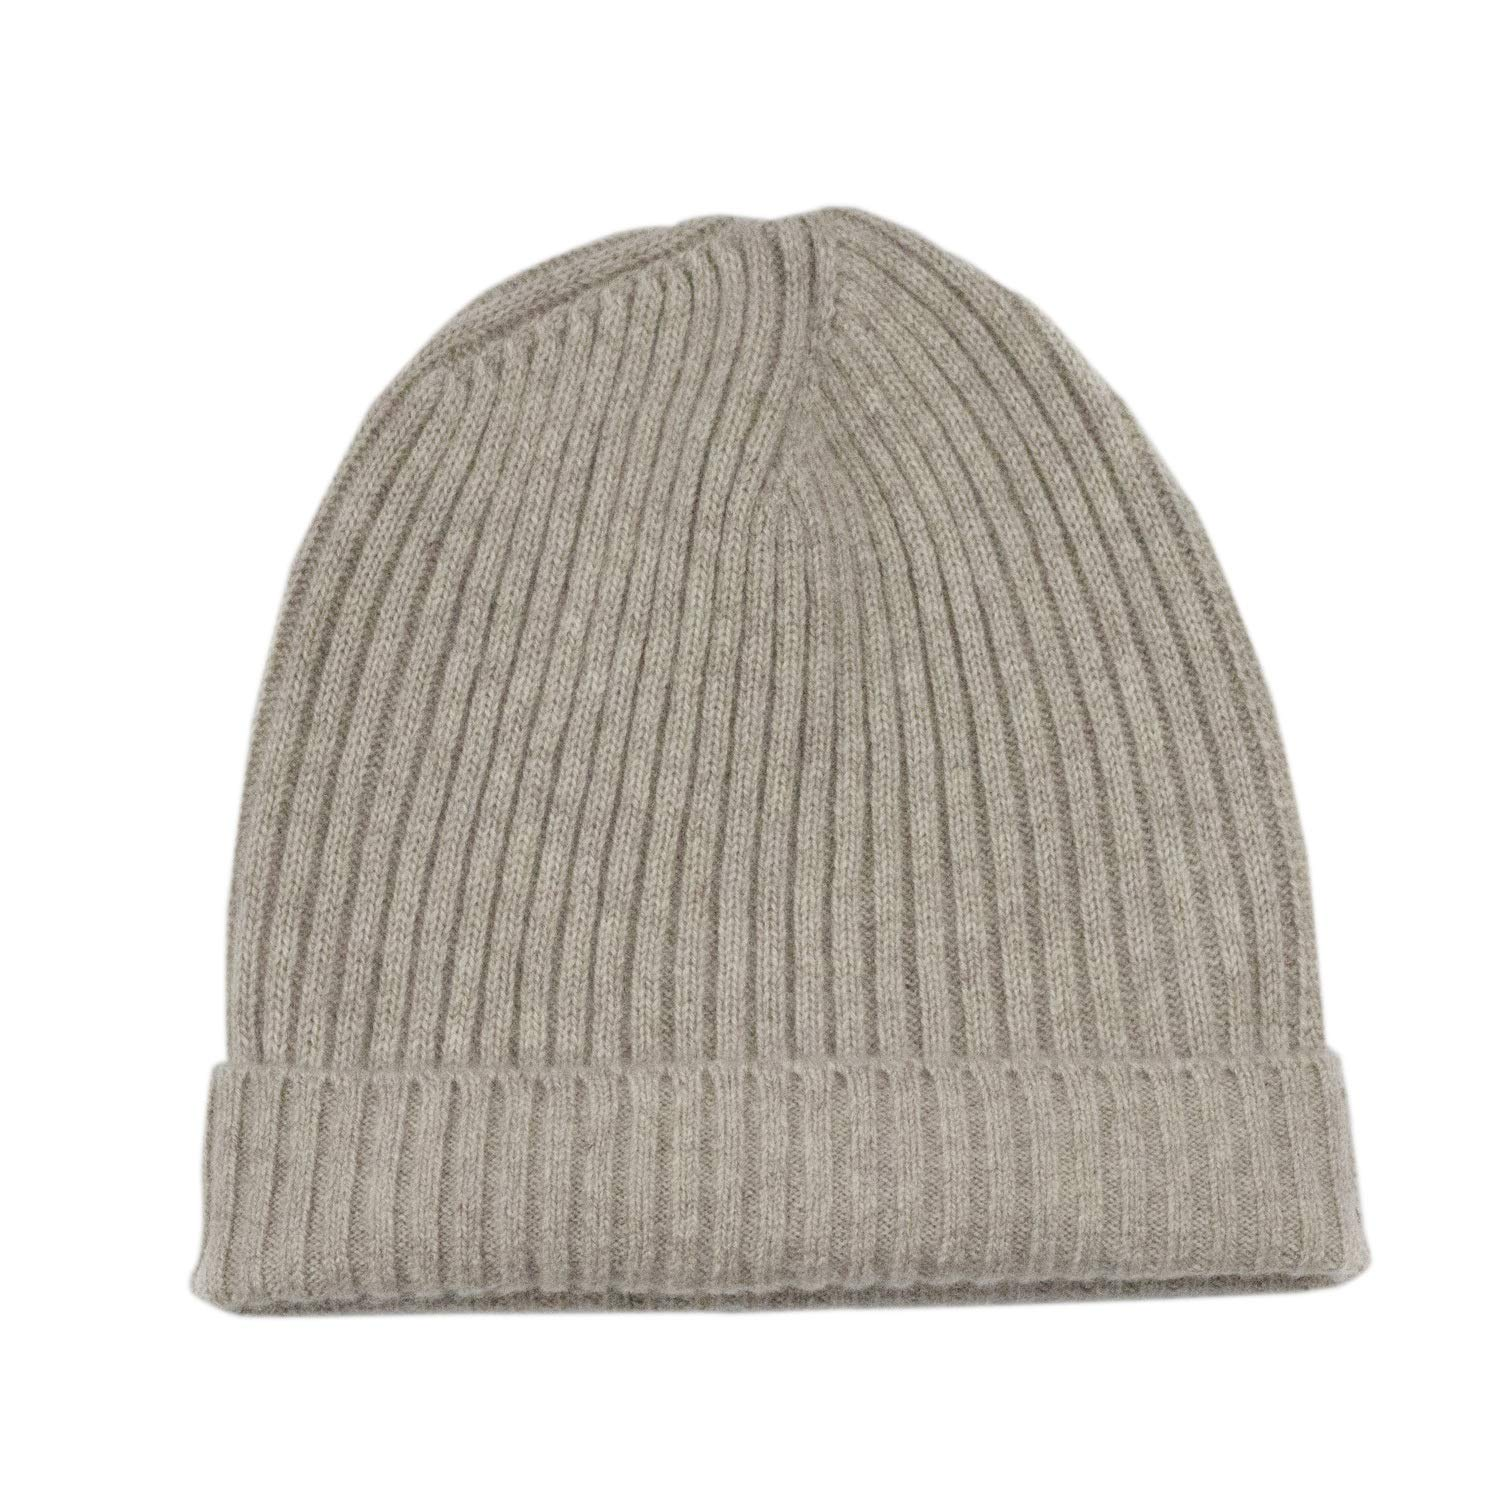 571ab21f1becb Pure 100% Cashmere Beanie for Men